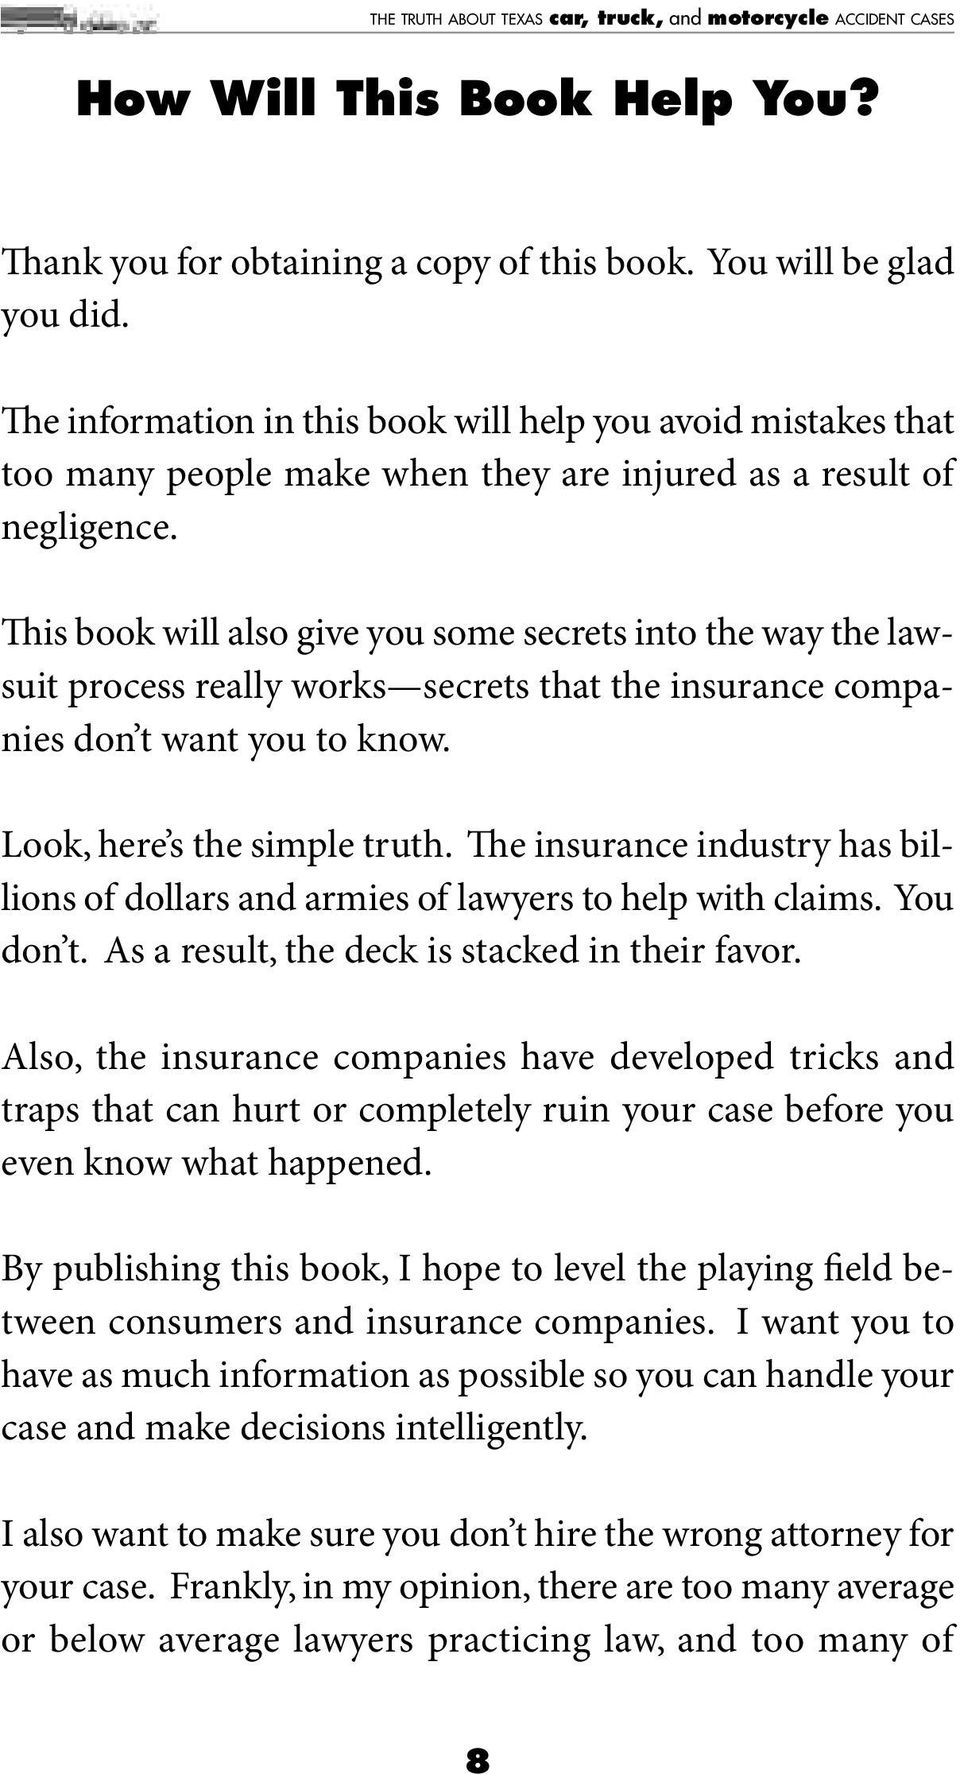 is book will also give you some secrets into the way the lawsuit process really works secrets that the insurance companies don t want you to know. Look, here s the simple truth.